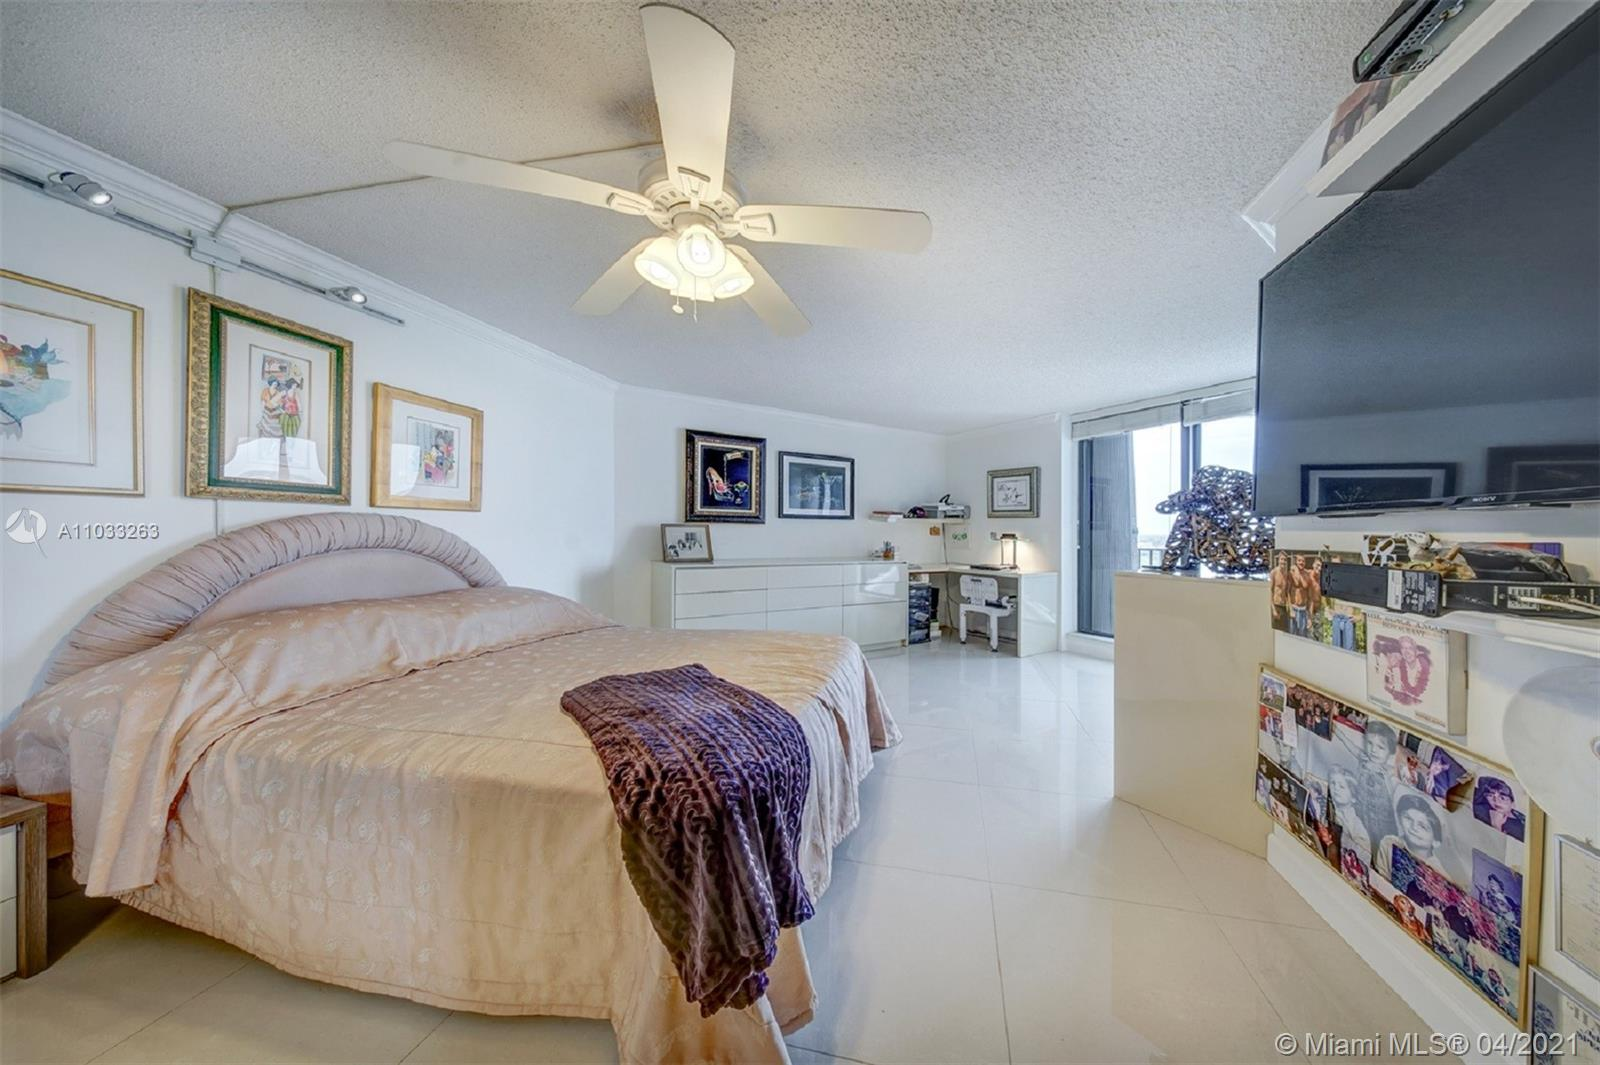 Photo of 300 Three Islands Blvd #314, Hallandale Beach, Florida, 33009 - tennis courts